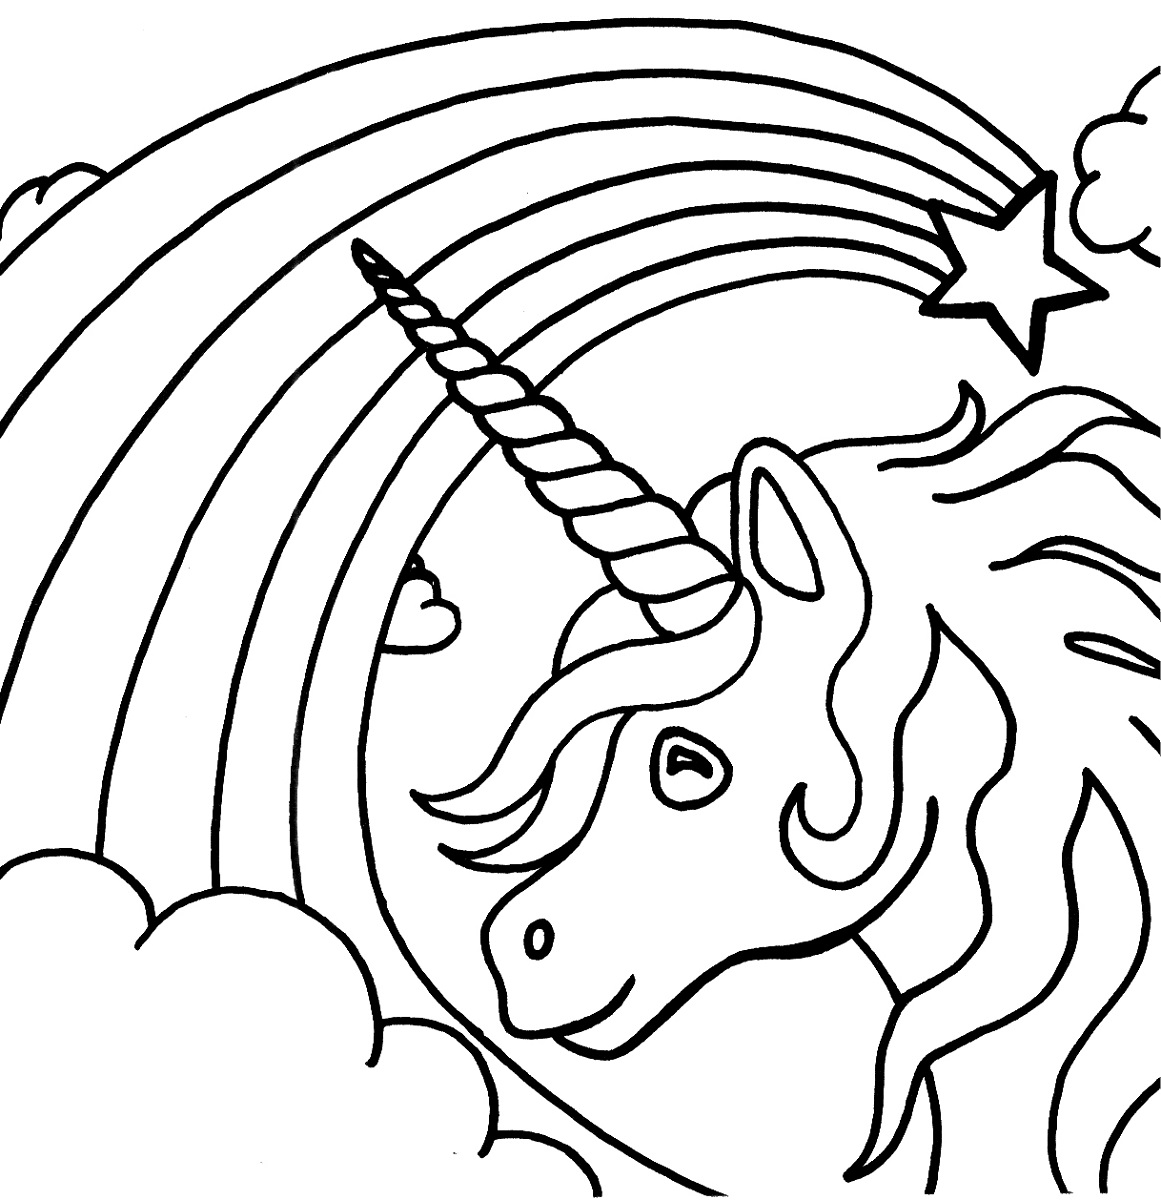 Coloring Pages For Unicorns : Unicorn color pages for kids activity shelter